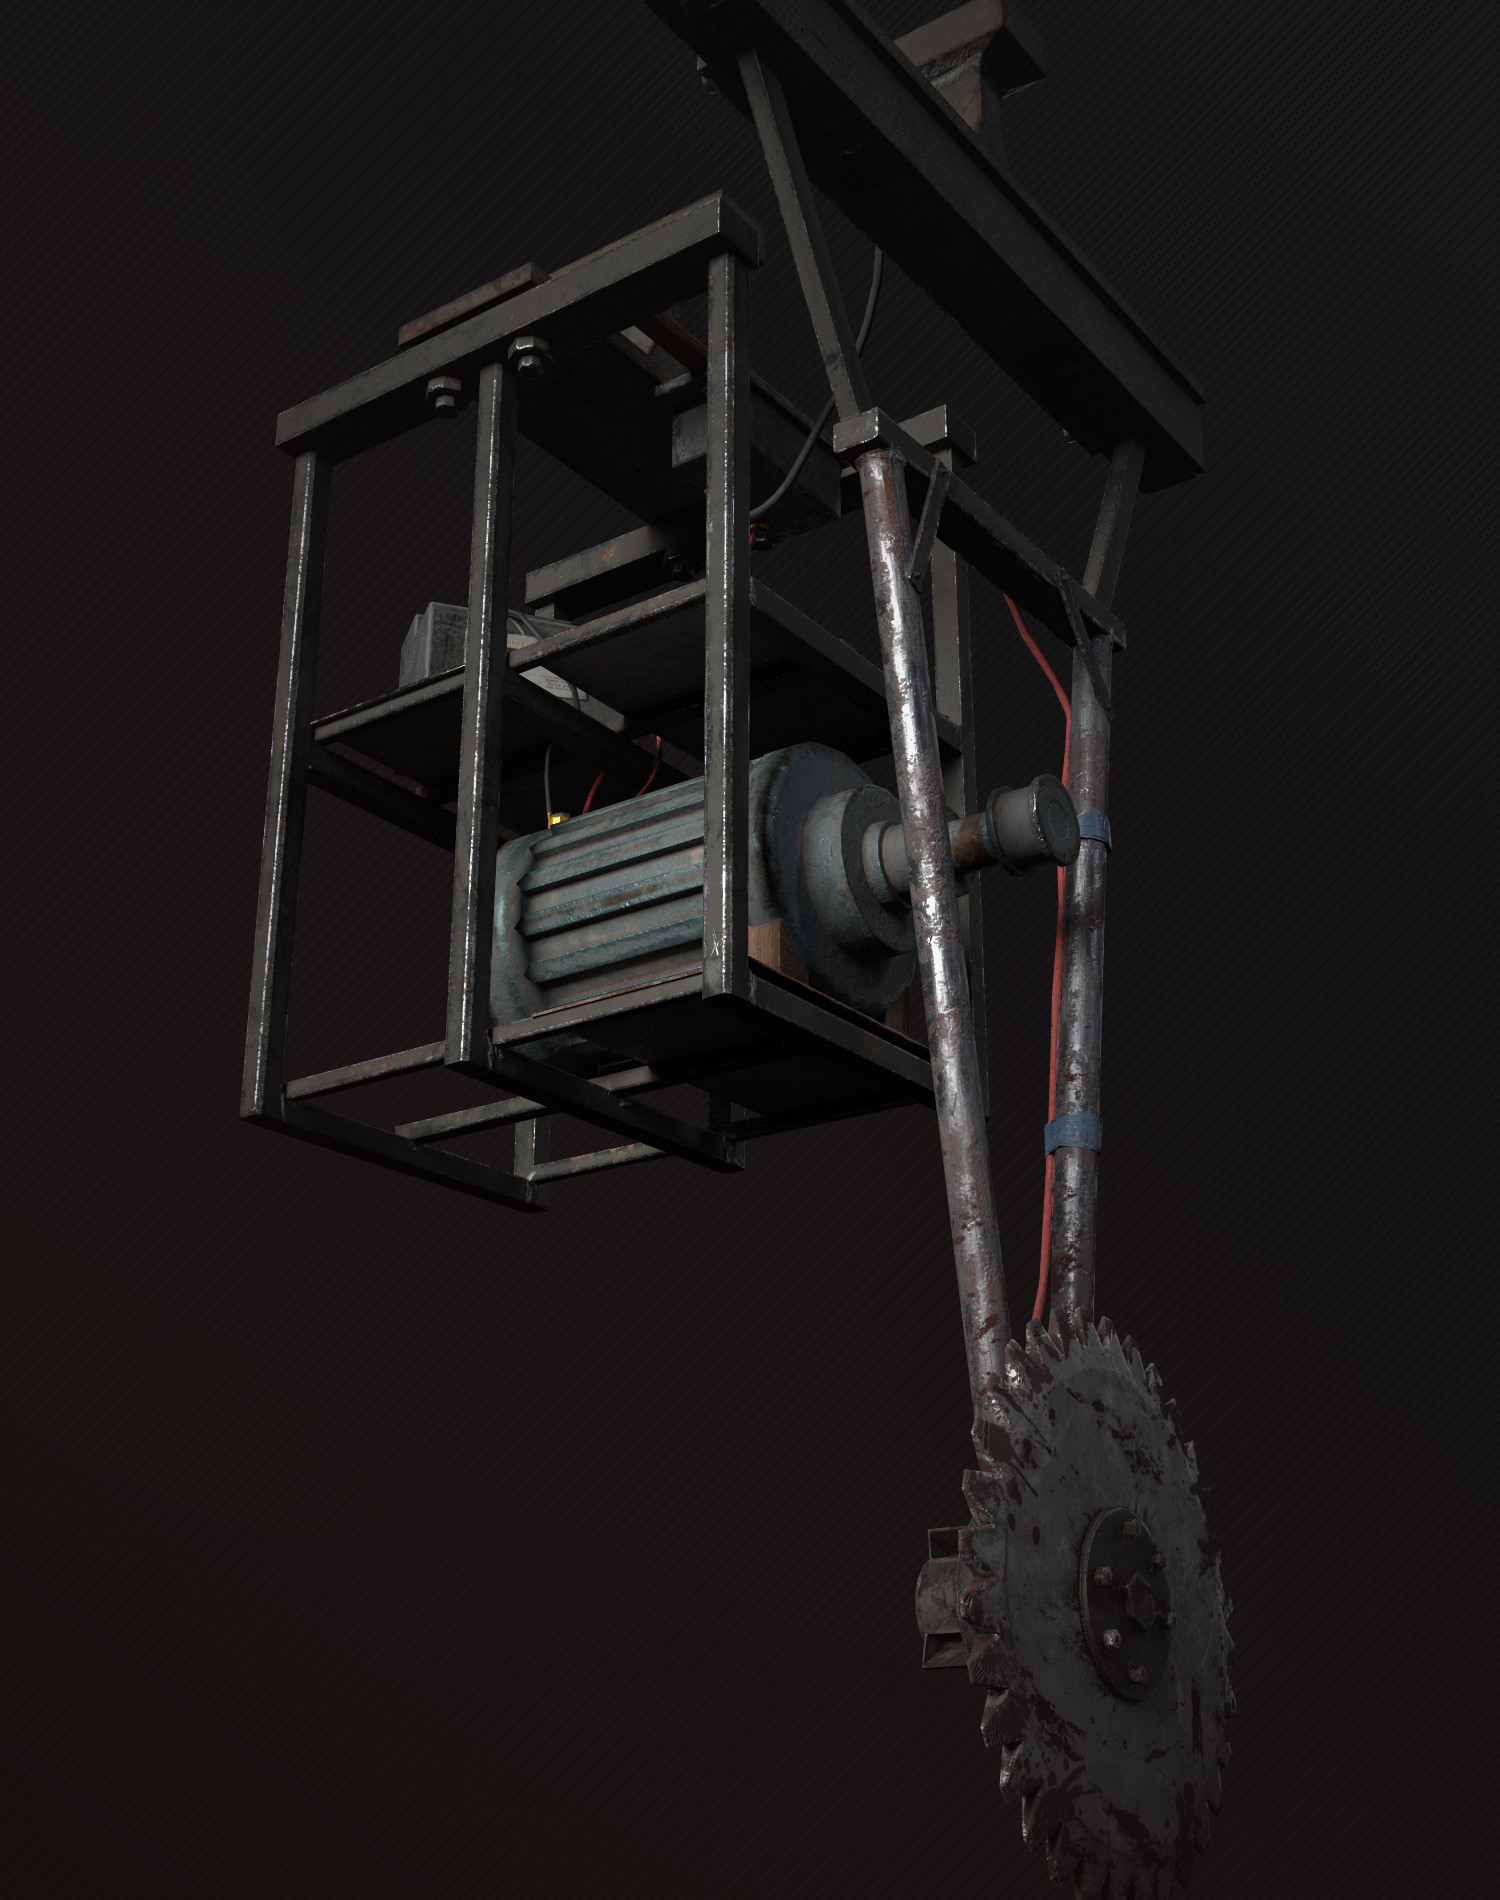 ArtStation - Torture machine (Saw), Sandro Kornely